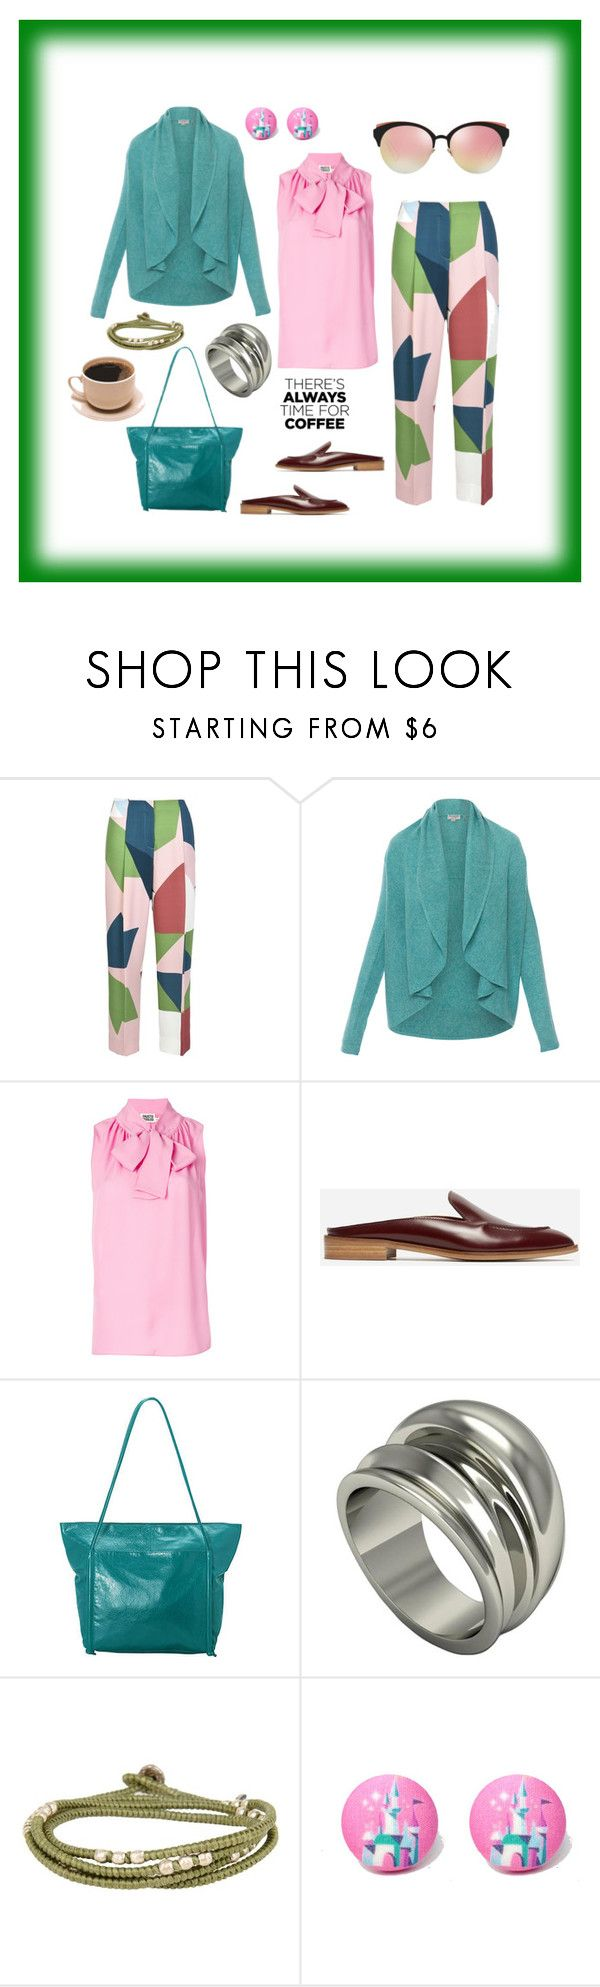 """""""casual coffee date"""" by moestesoh ❤ liked on Polyvore featuring Parden's, Repeat, FAUSTO PUGLISI, Everlane, Latico, Barbara Nanning, M. Cohen, Christian Dior and CoffeeDate"""